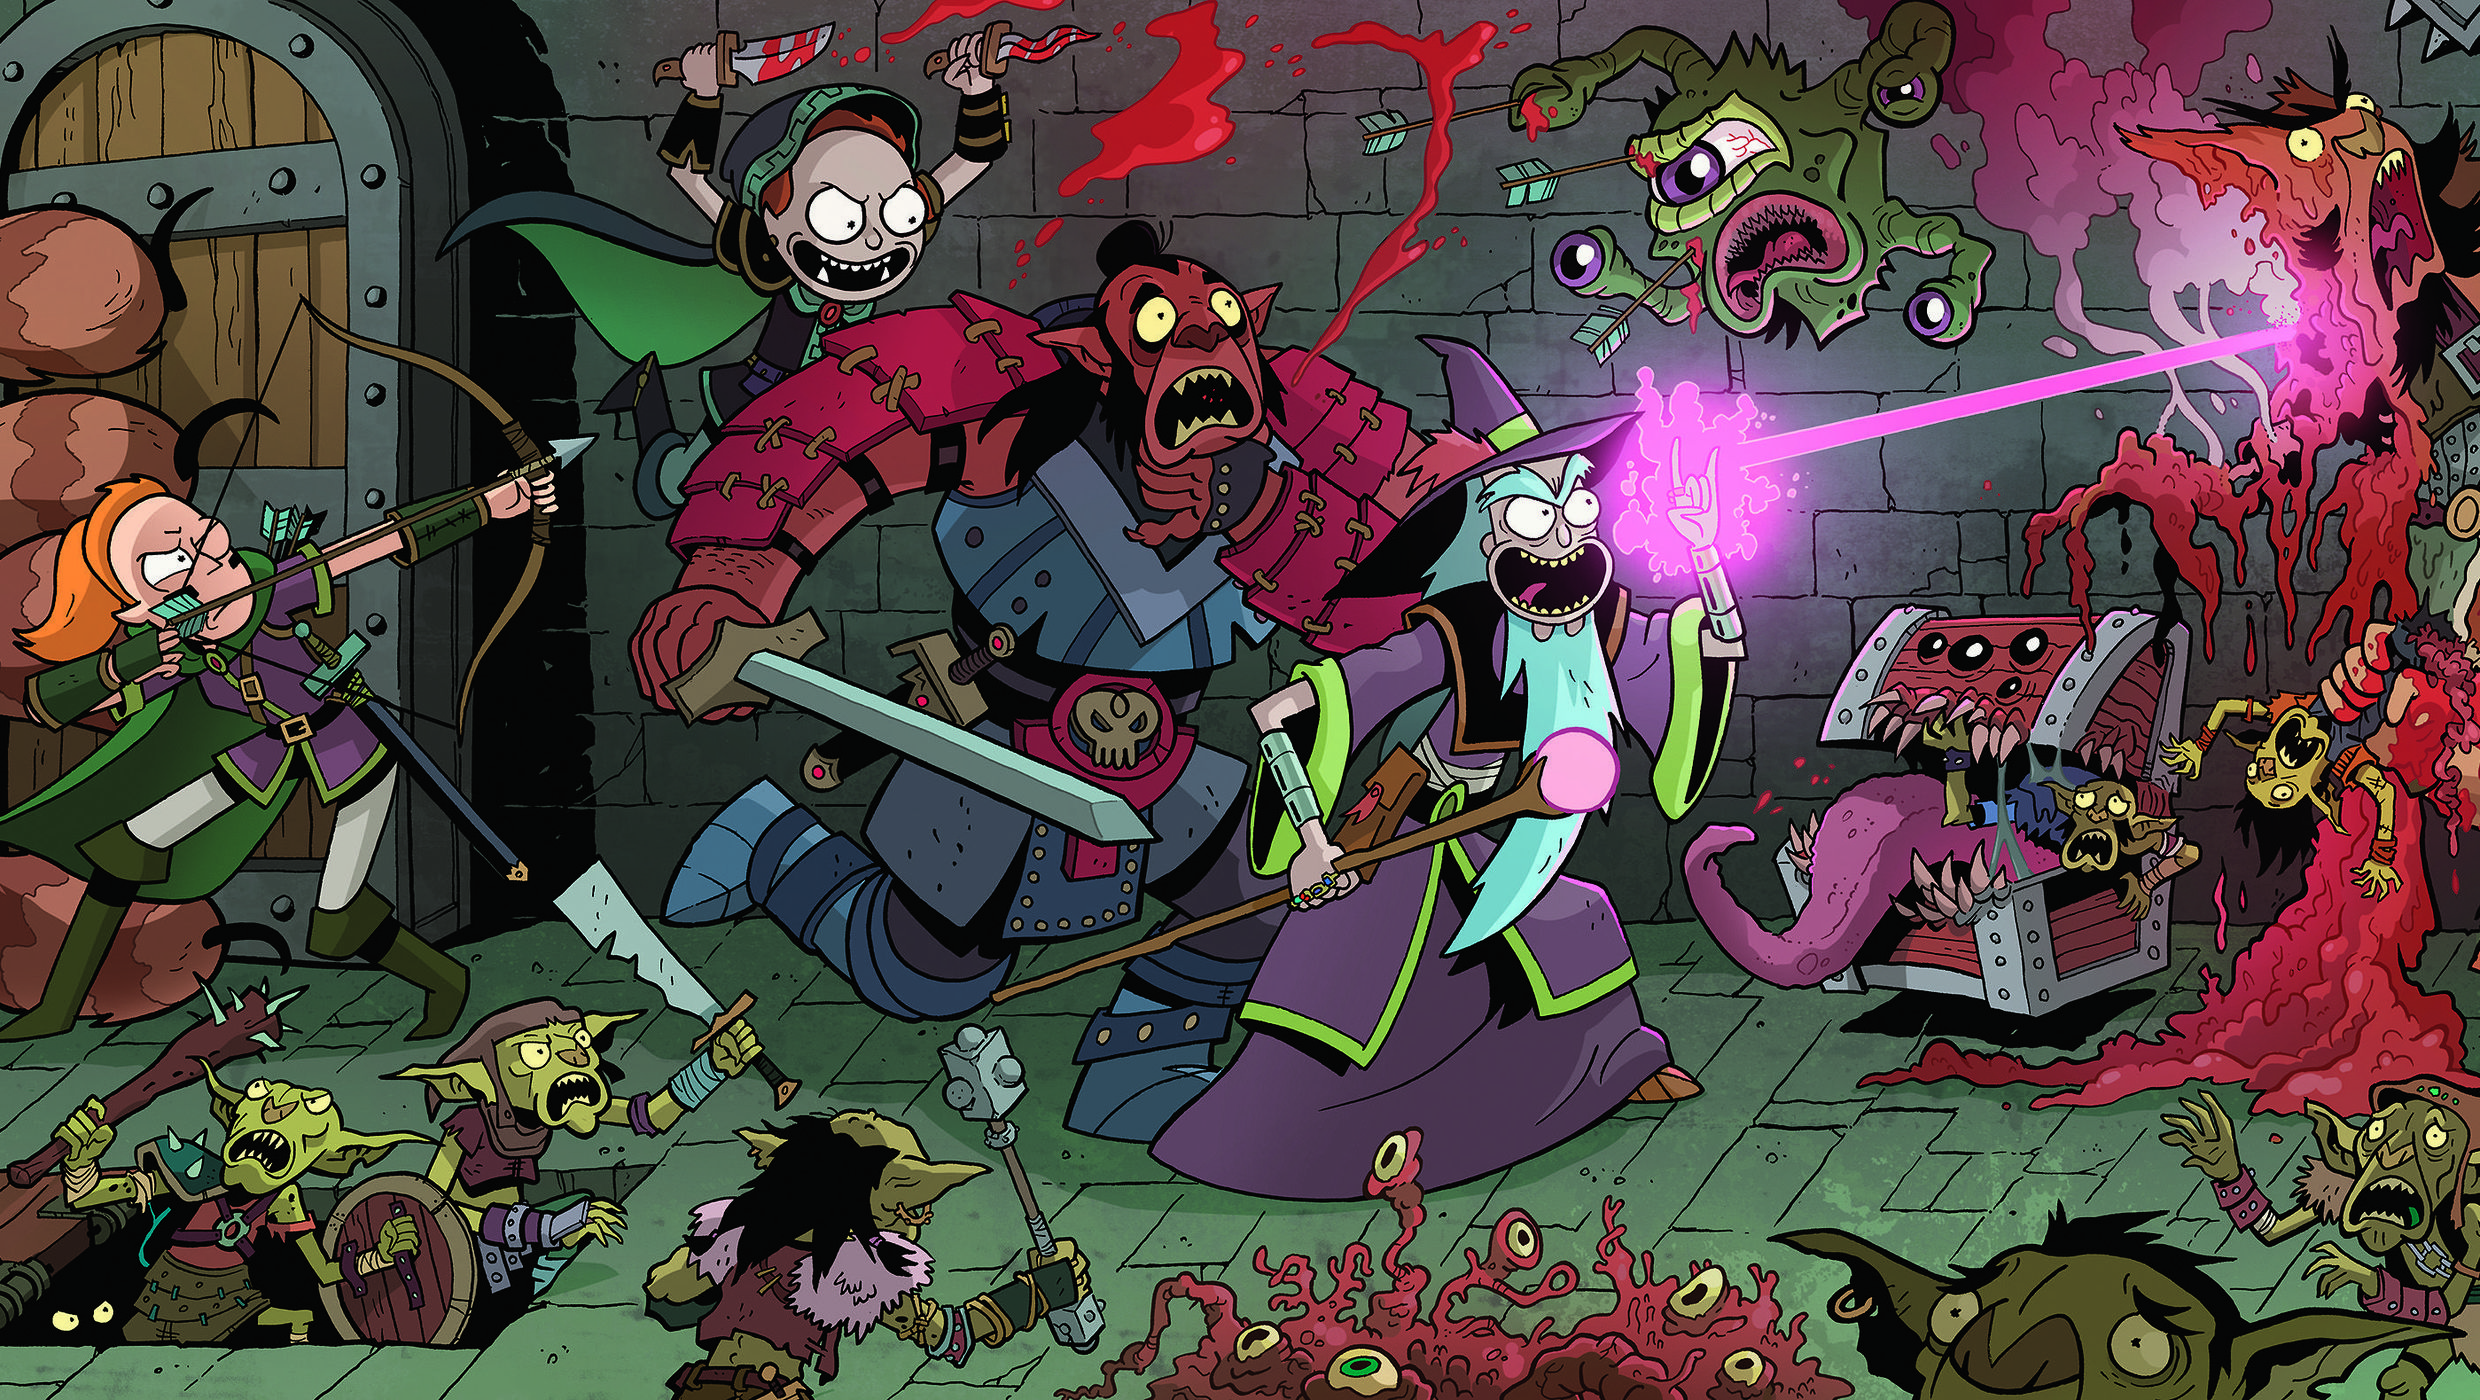 Artwork of Rick and Morty battling monsters from the Rick & Morty Dungeons & Dragons RPG